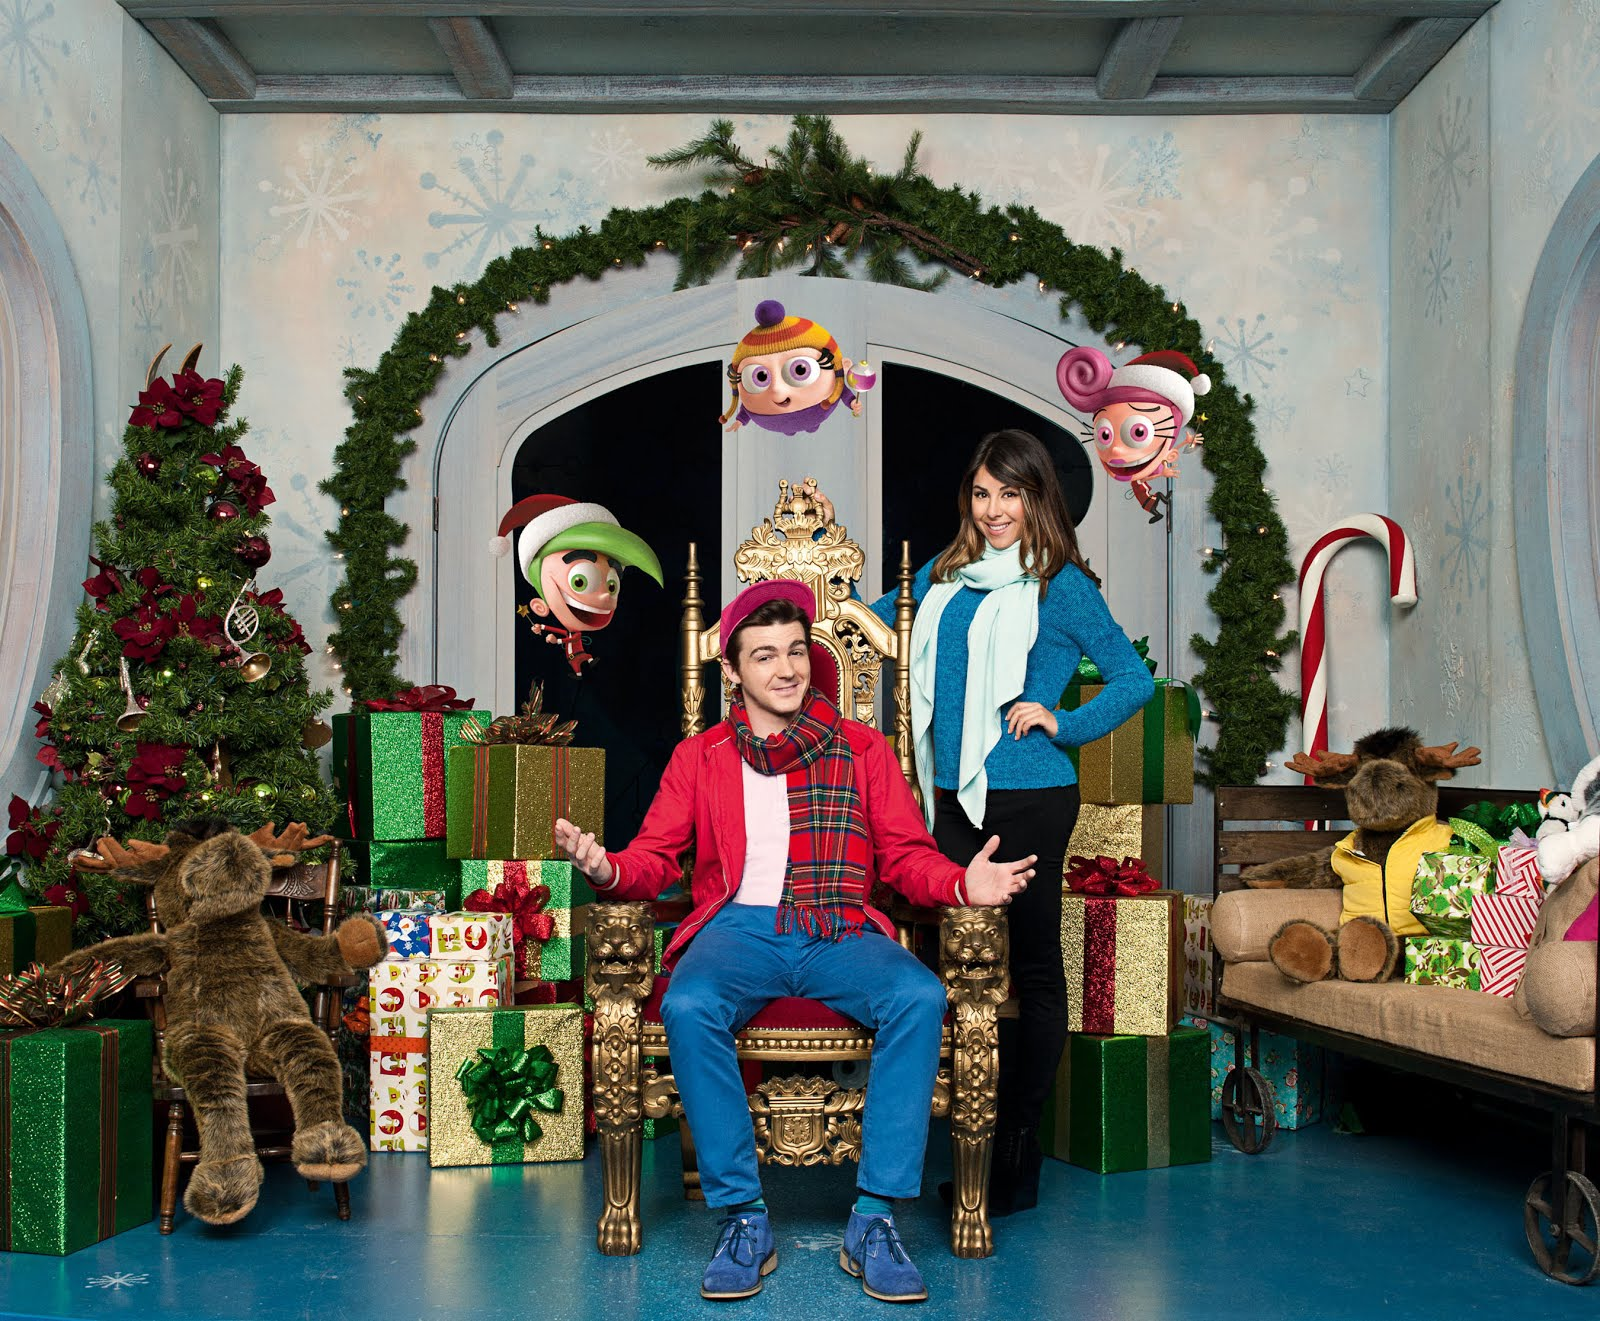 download image nickelodeon press photo featuring the cast of nickelodeons brand new holiday special a fairly odd christmas - Fairly Oddparents Christmas